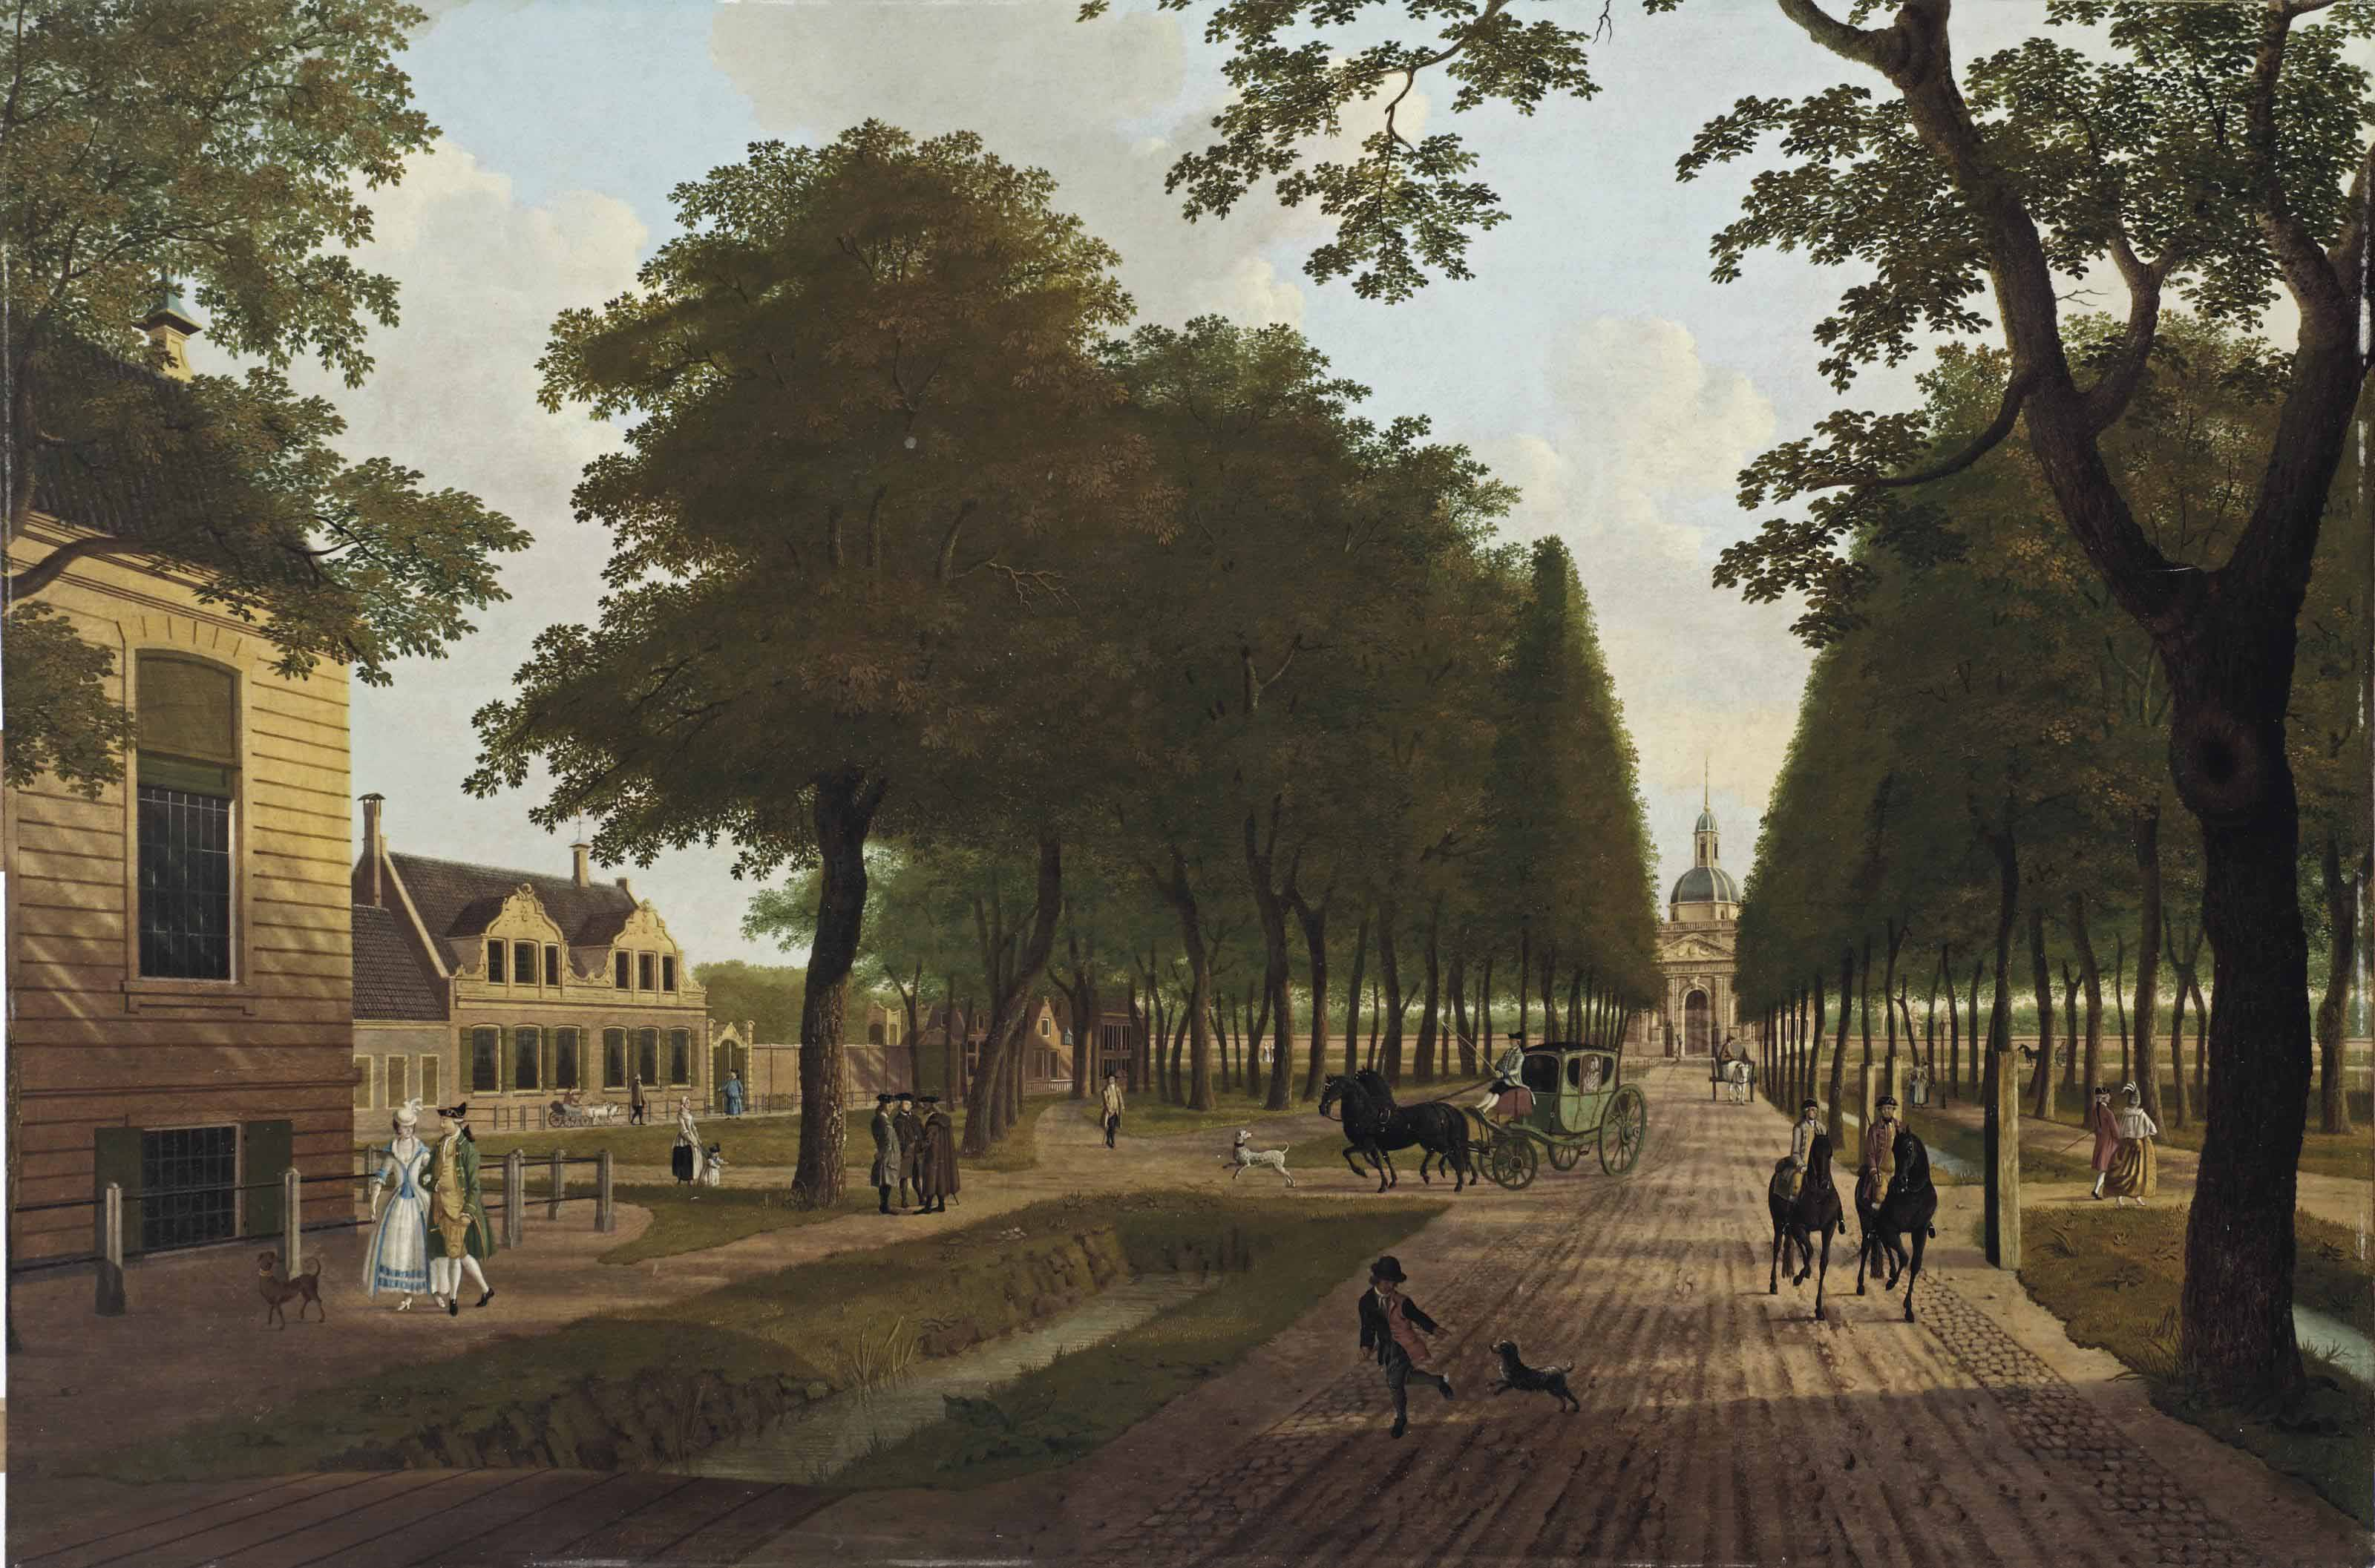 A view of the Plantage Middenlaan, Amsterdam, with the residence of 'Vlietsorg' to the left and the Muiderpoort in the distance